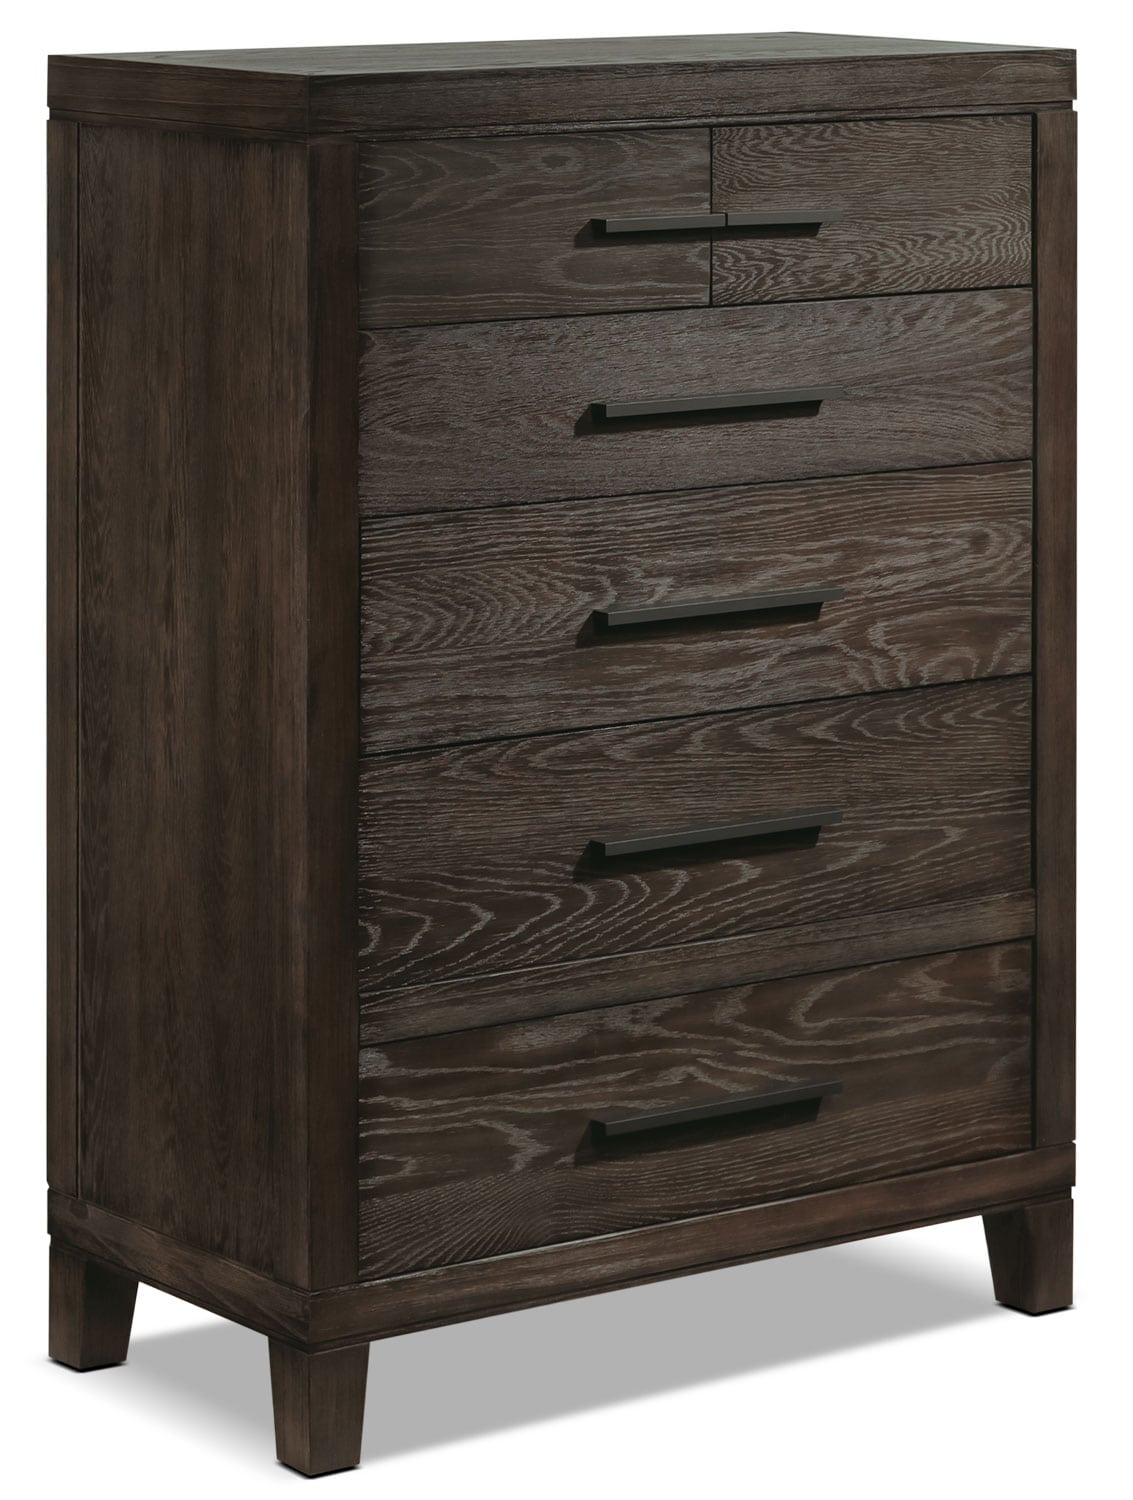 Bedroom Furniture - Bravo 6-Drawer Chest - Platinum Oak